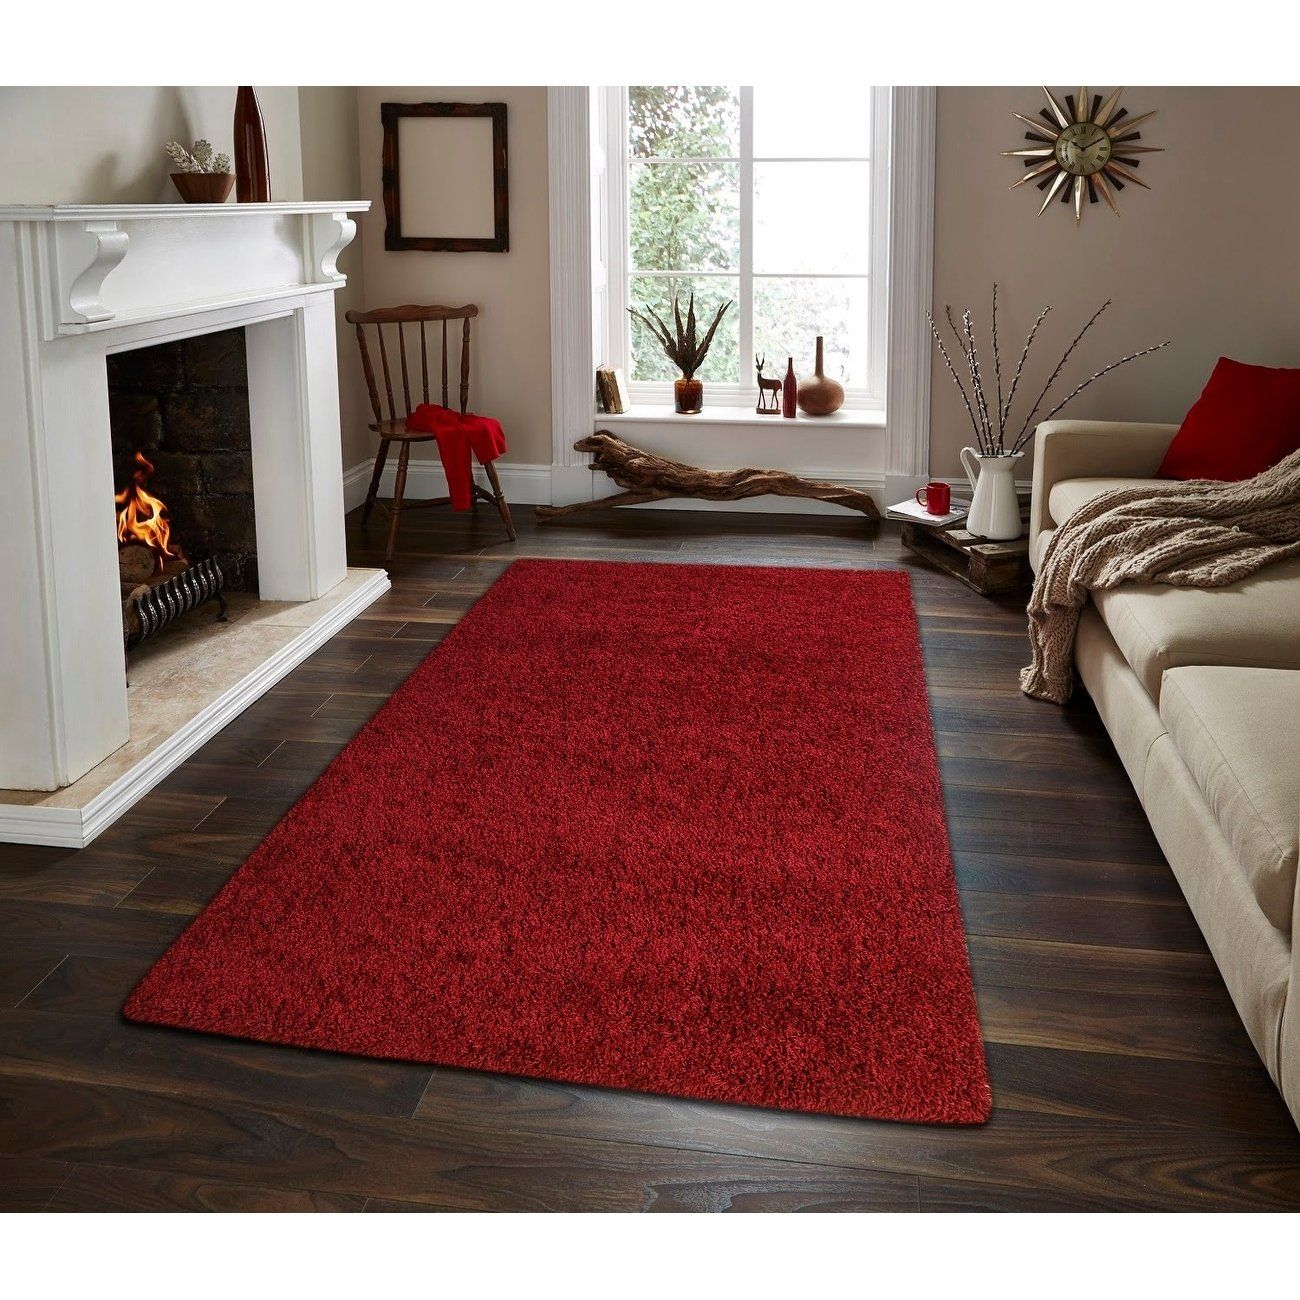 Moon Solid Shag Modern Plush Colors And Sizes Red 5 X 7 5 X 7 Red 5 X 8 Area Rugs Rugs In Living Room Rugs